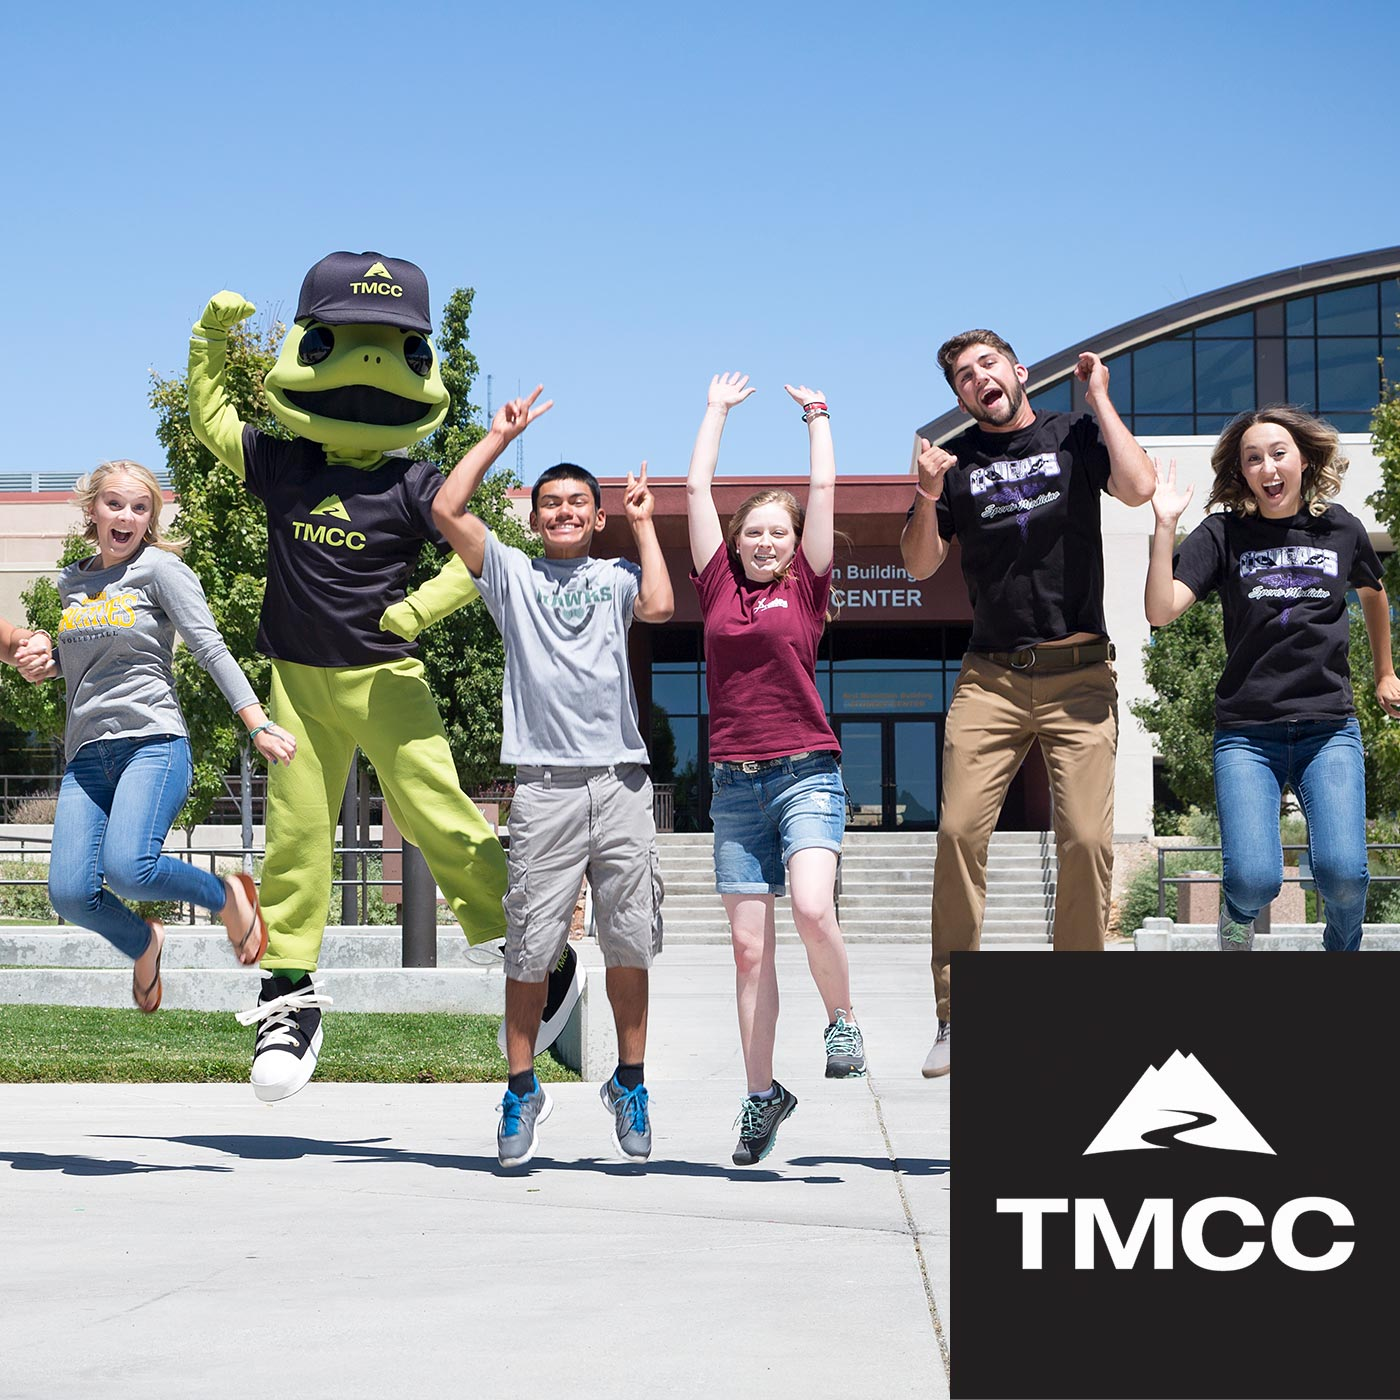 The TMCC DISCO Welcomes You!